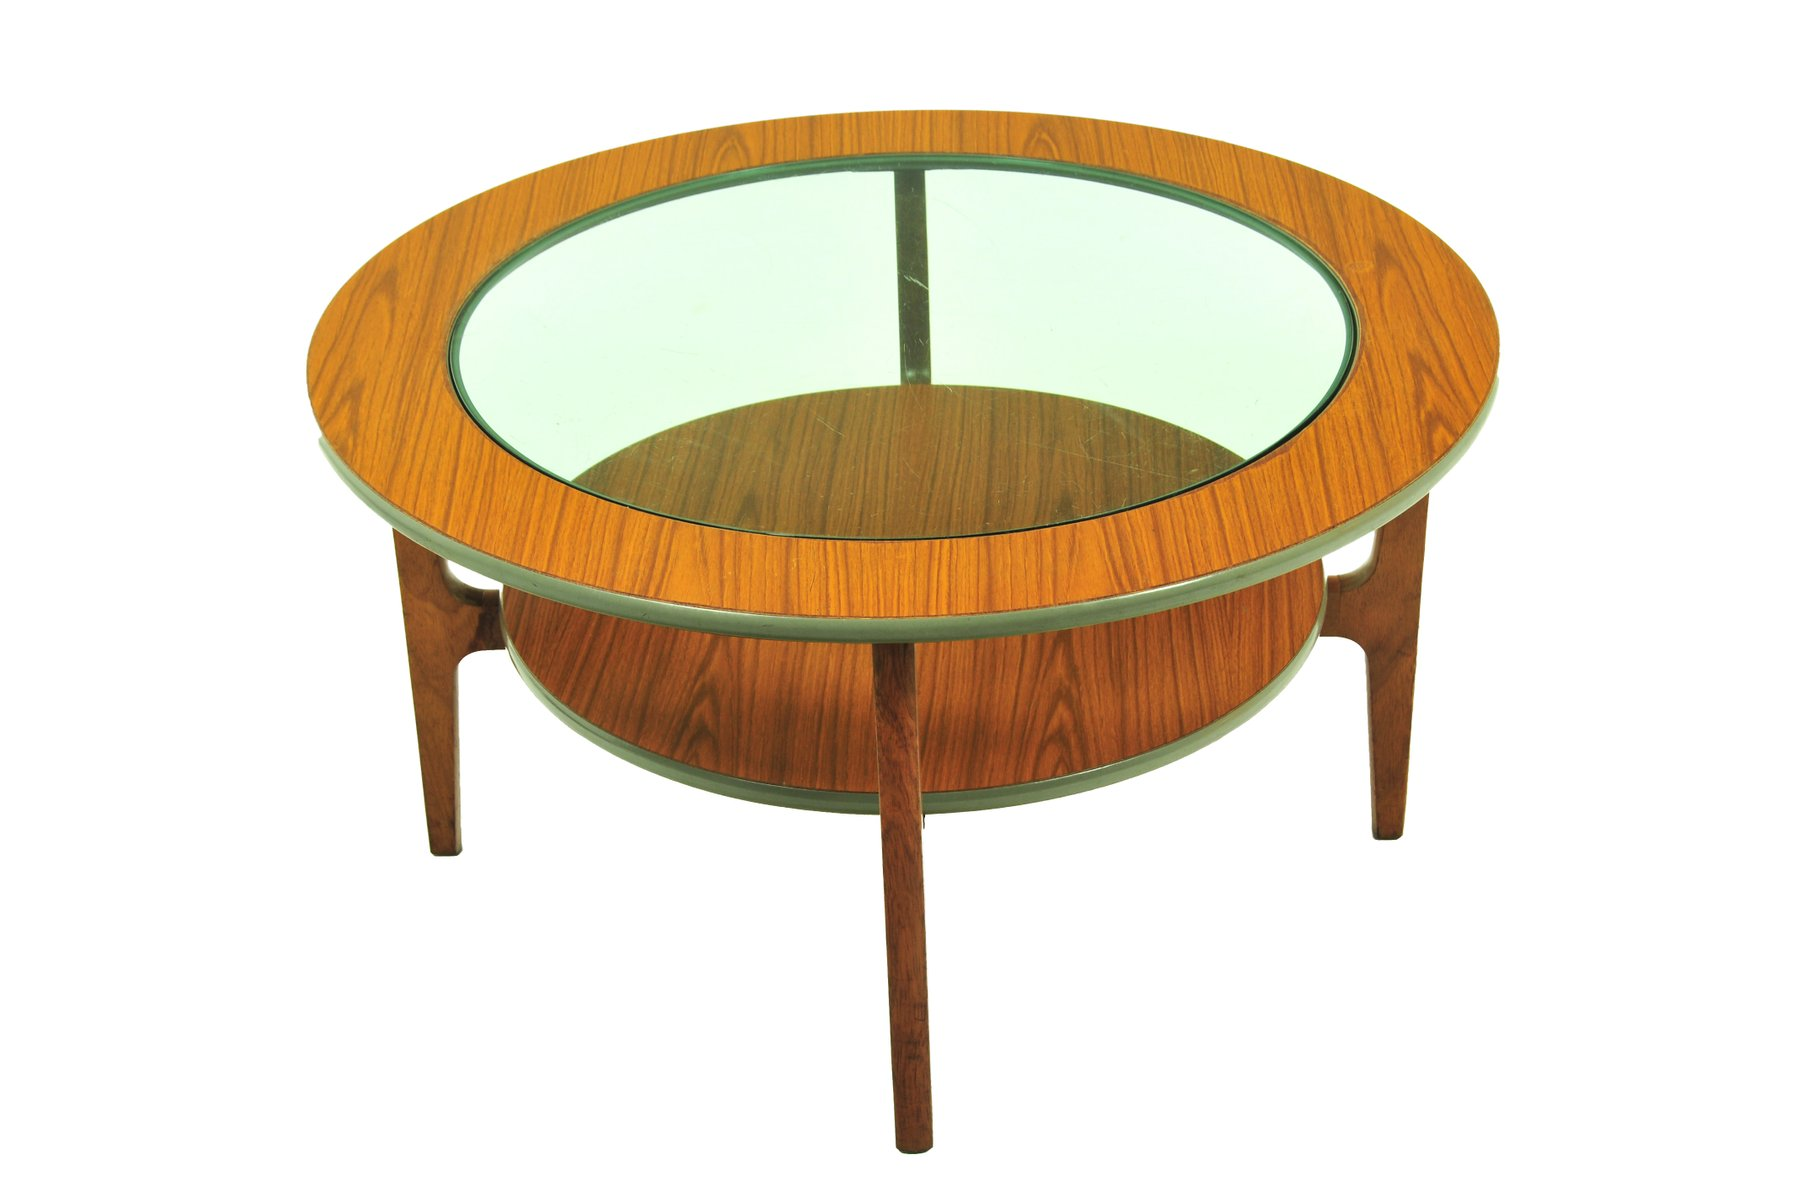 Table basse avec plateau maison design for Table basse scandinave plateau en verre